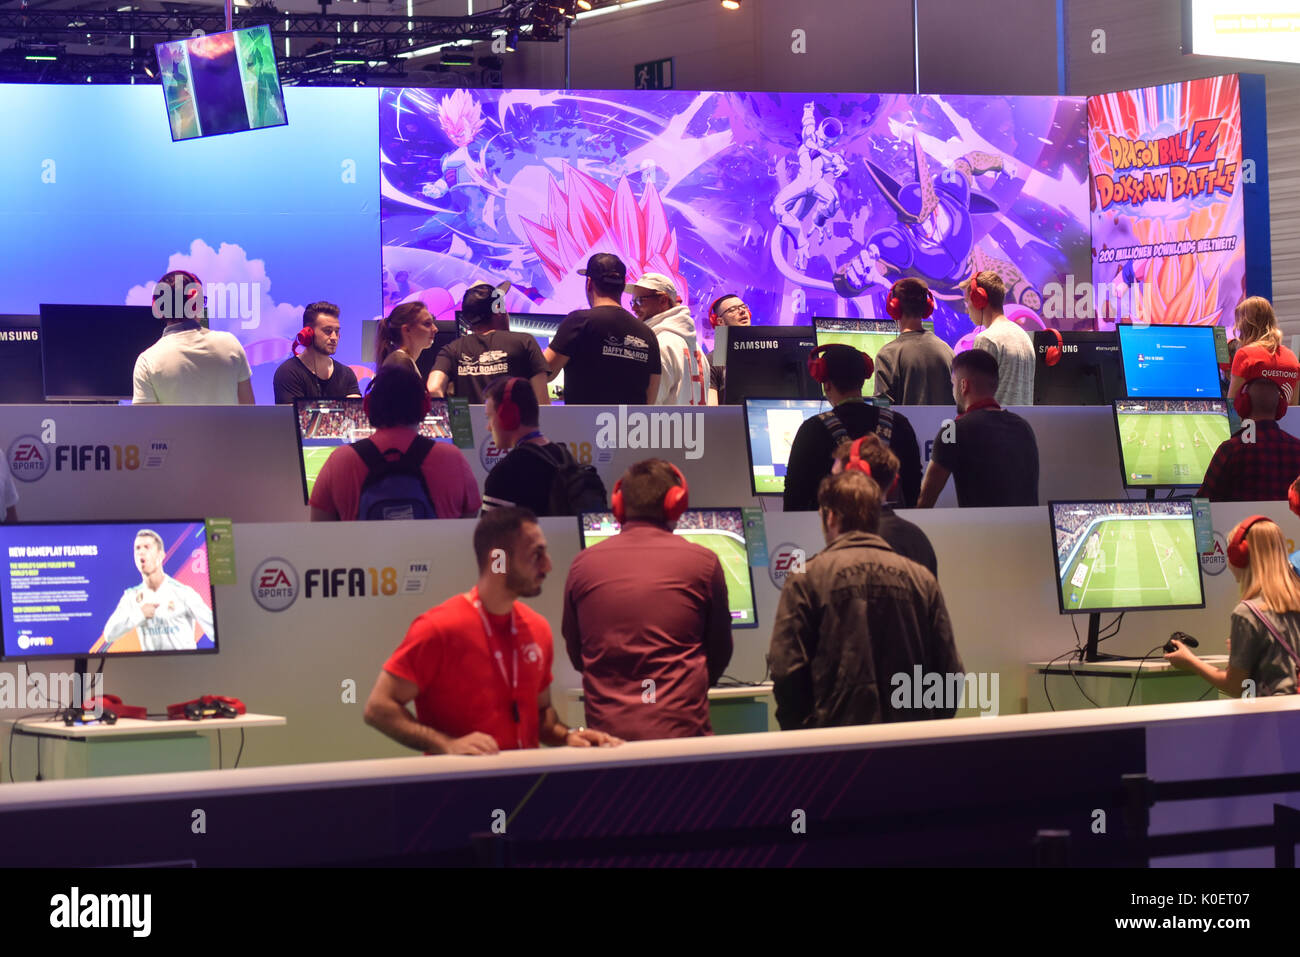 Cologne, Germany. 22nd Aug, 2017. Germany, Cologne, August 22, 2017, Gamescom: Players at the booth of EA Sports mit FIFA 18. Credit: Juergen Schwarz/Alamy Live News - Stock Image